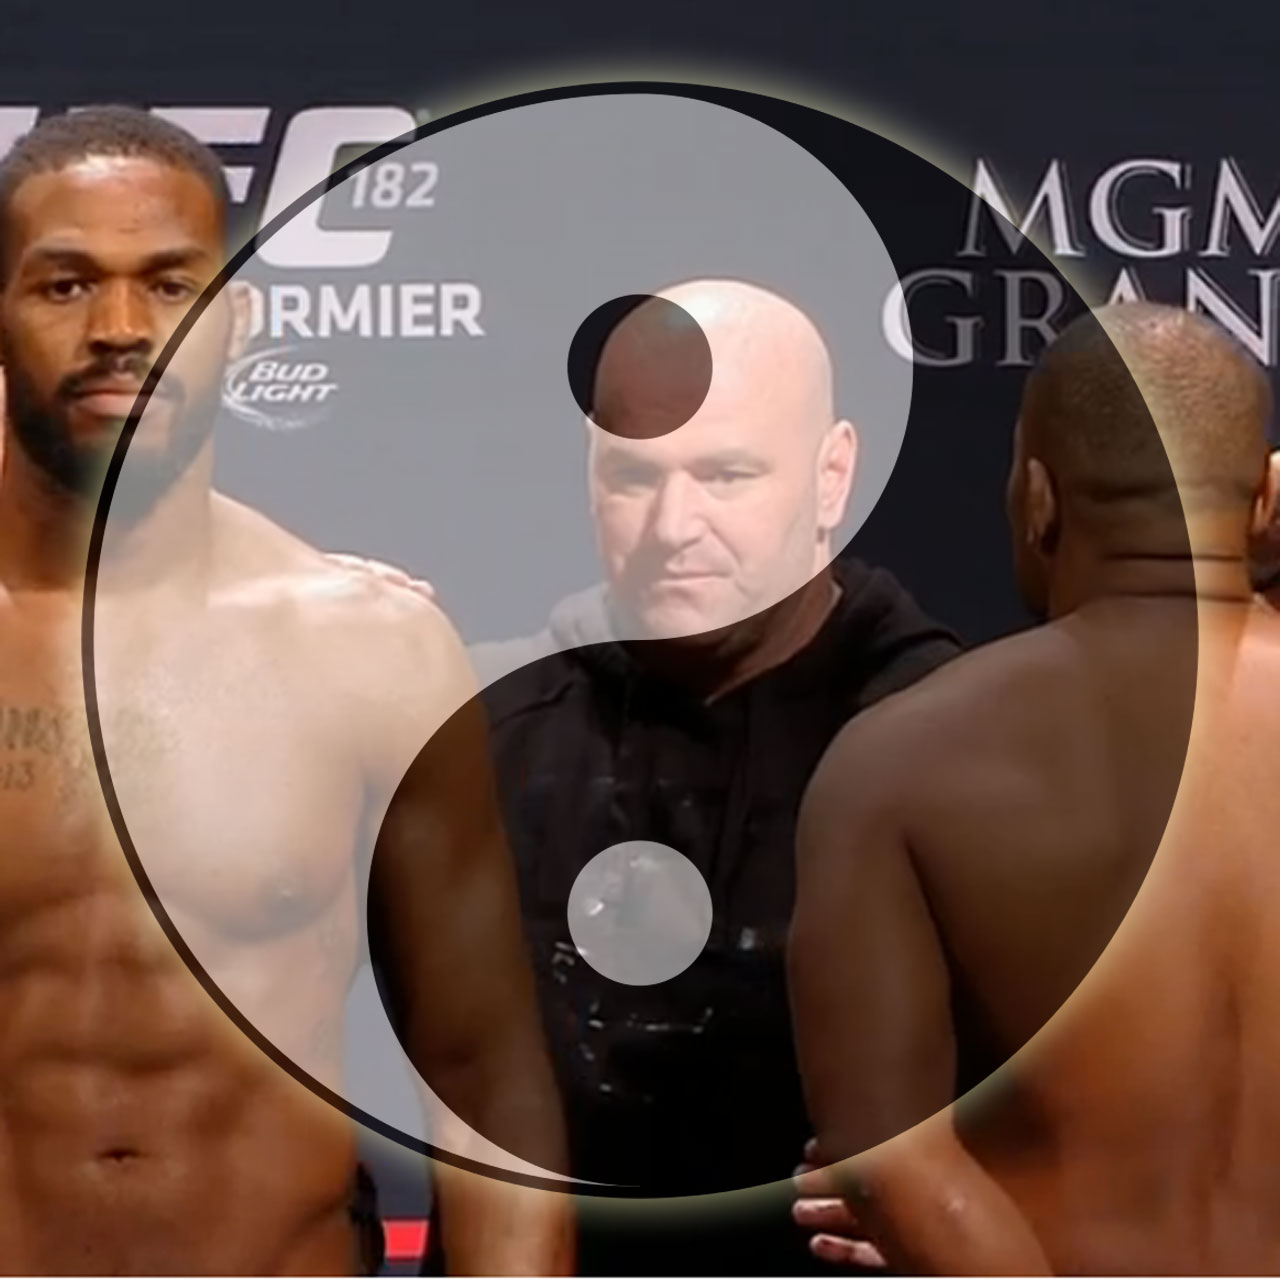 Yin Yang: Jon Jones and Daniel Cormier before UFC 182